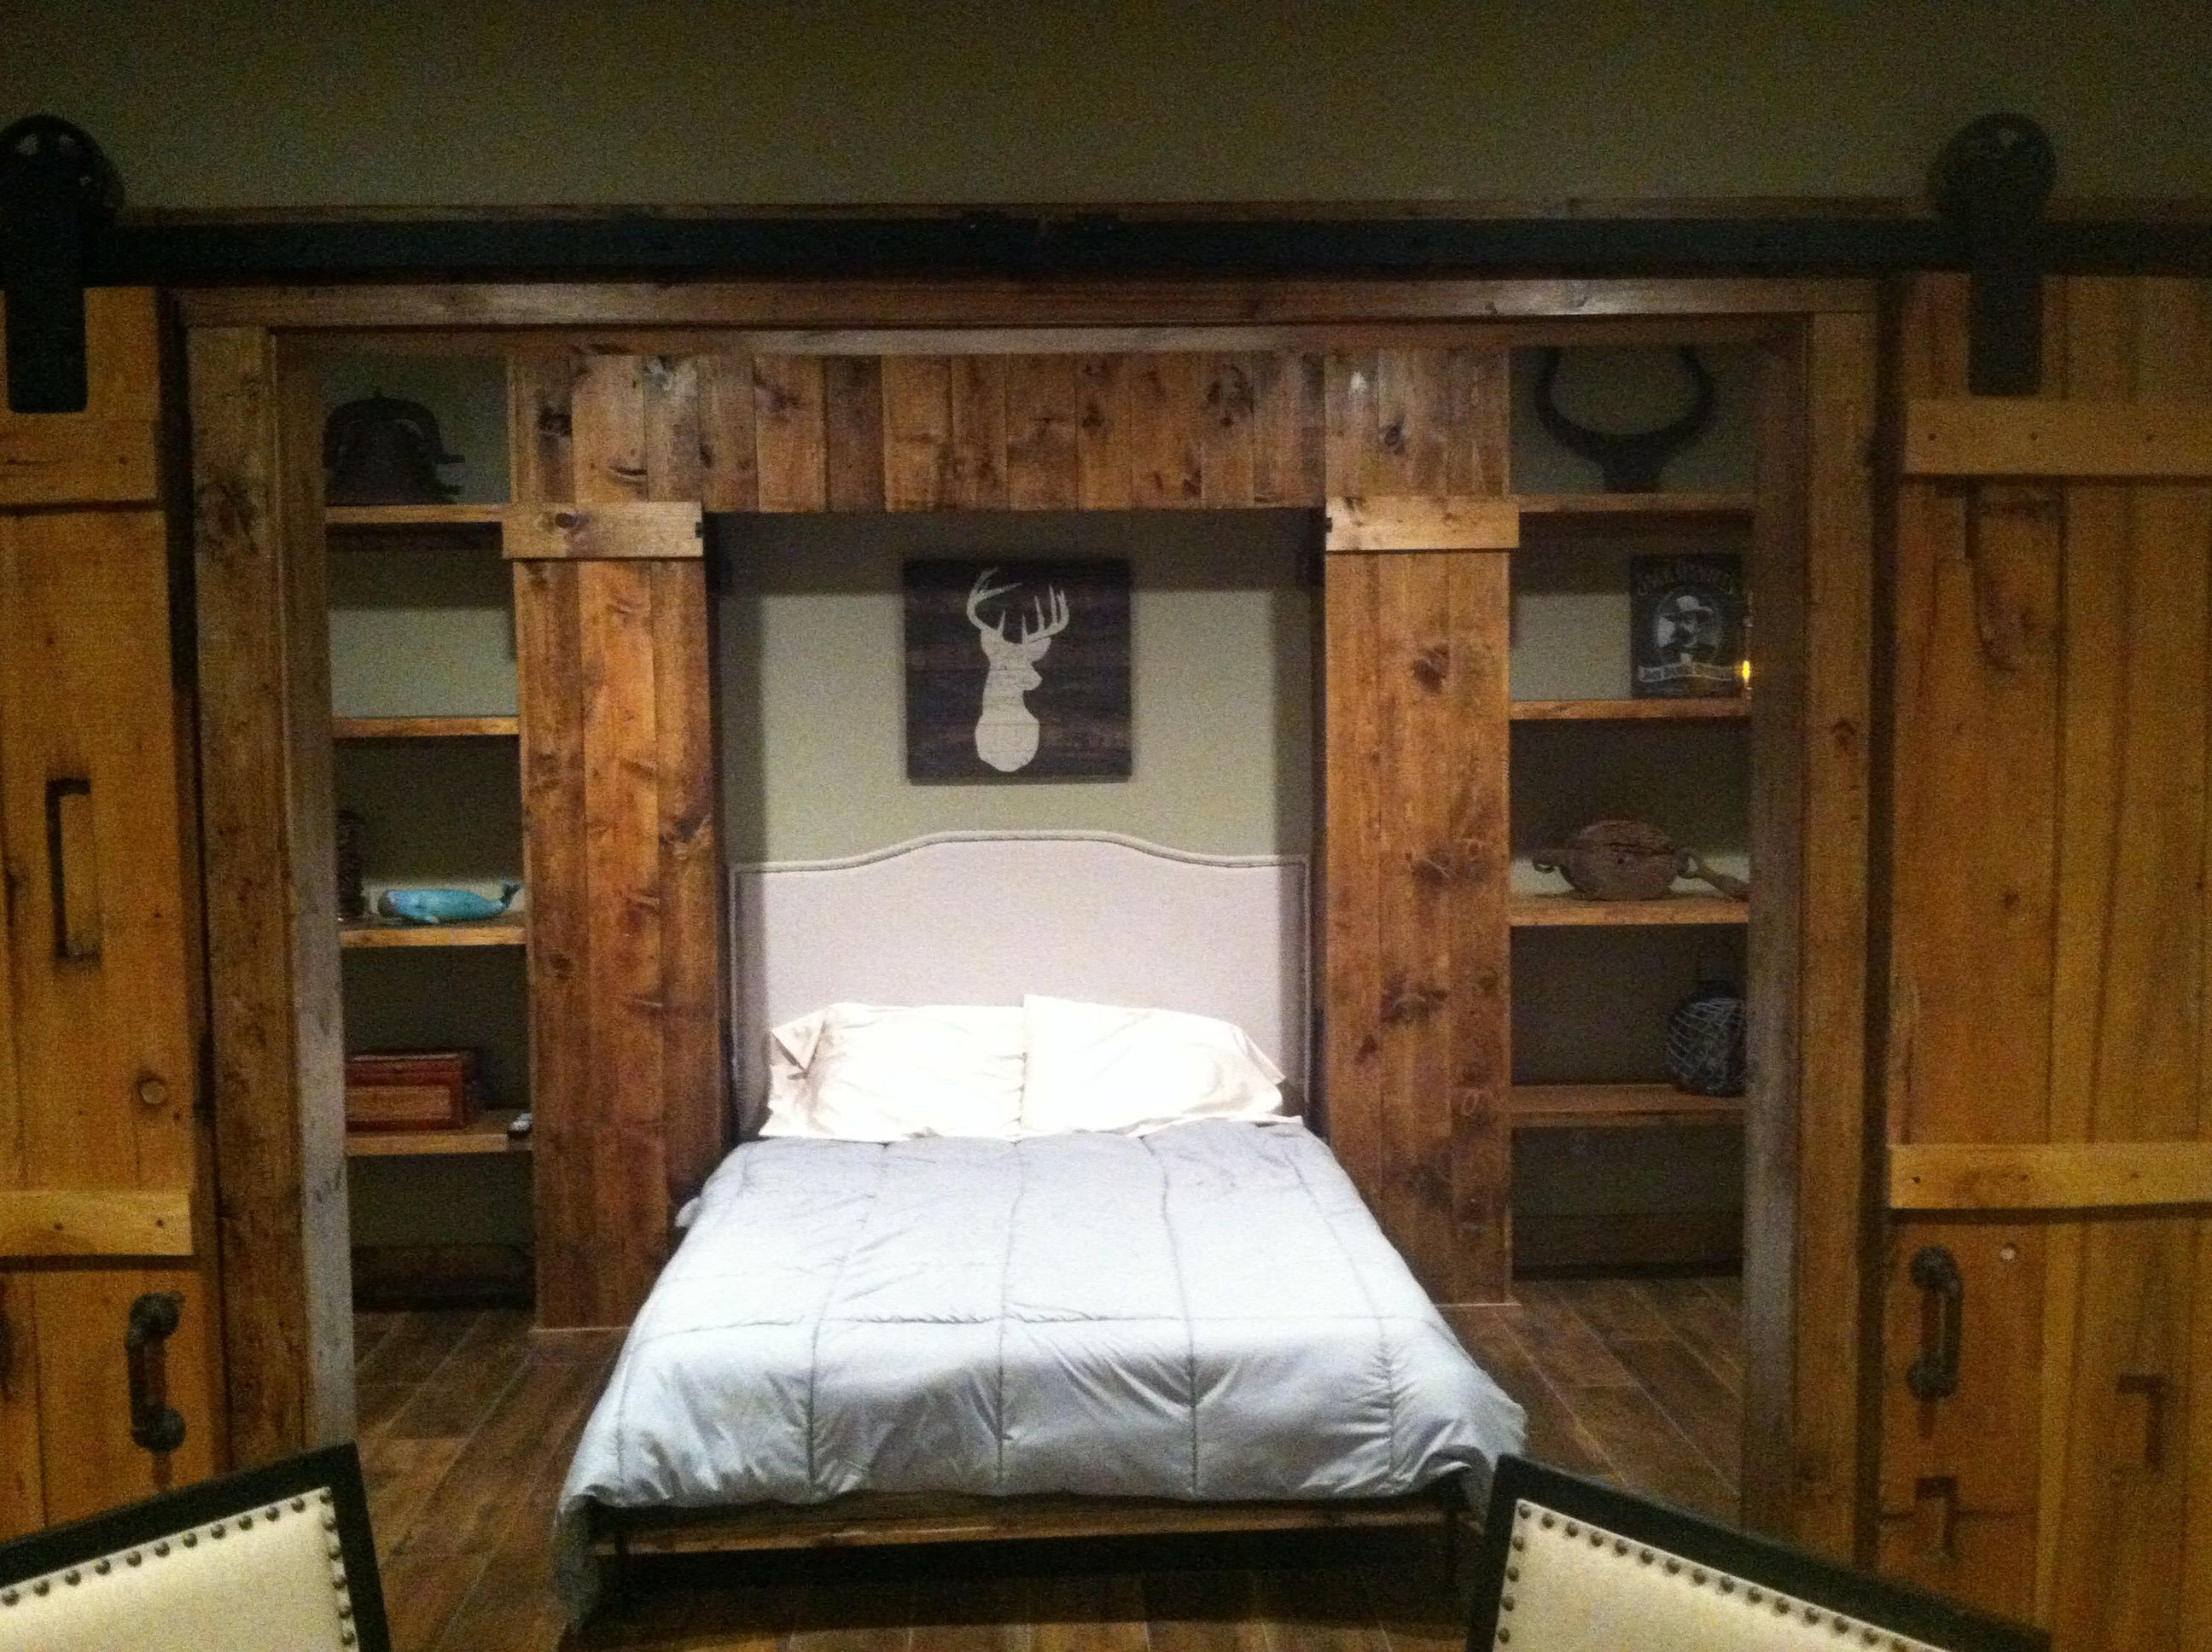 Rustic Murphy Bed A Murphy Bed Changes This Game Room Into An Instant Guest Room Rustic